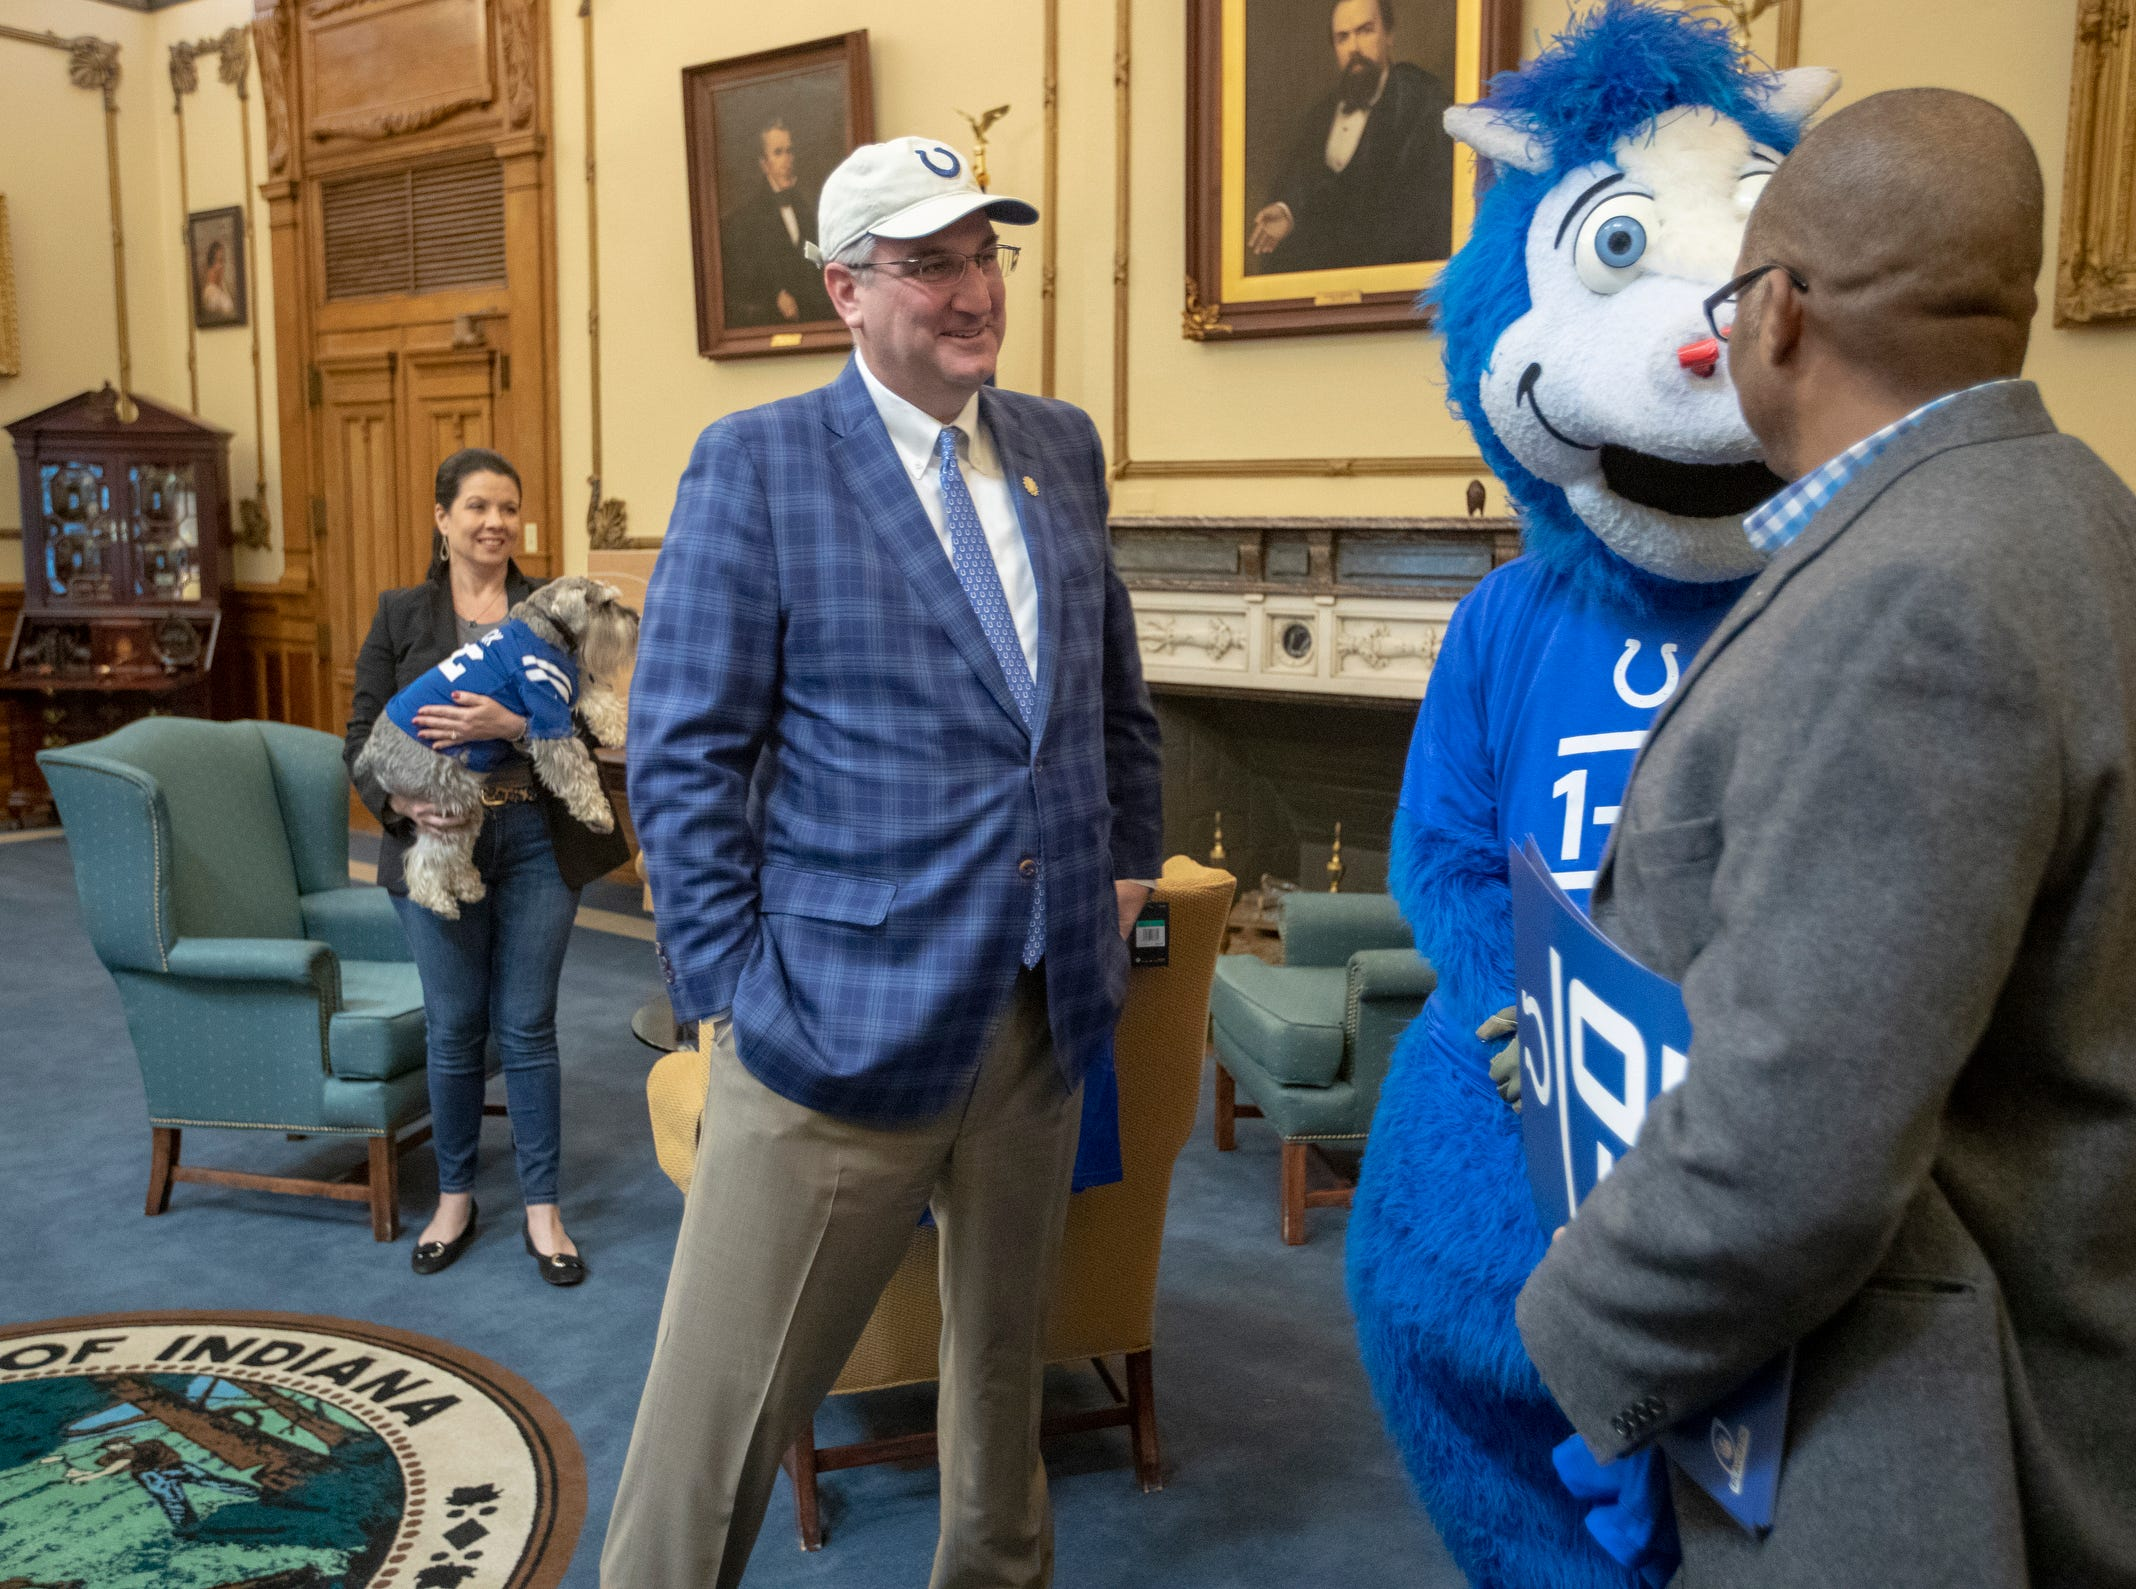 Eric Holcomb (left), visits with mascot Blue and Colts VP of Communications Steve Campbell, at Holcomb's office in the Indiana Statehouse, Indianapolis, Wednesday, January 3, 2019. The Colts have a Wild Card game this coming weekend against the Texans.